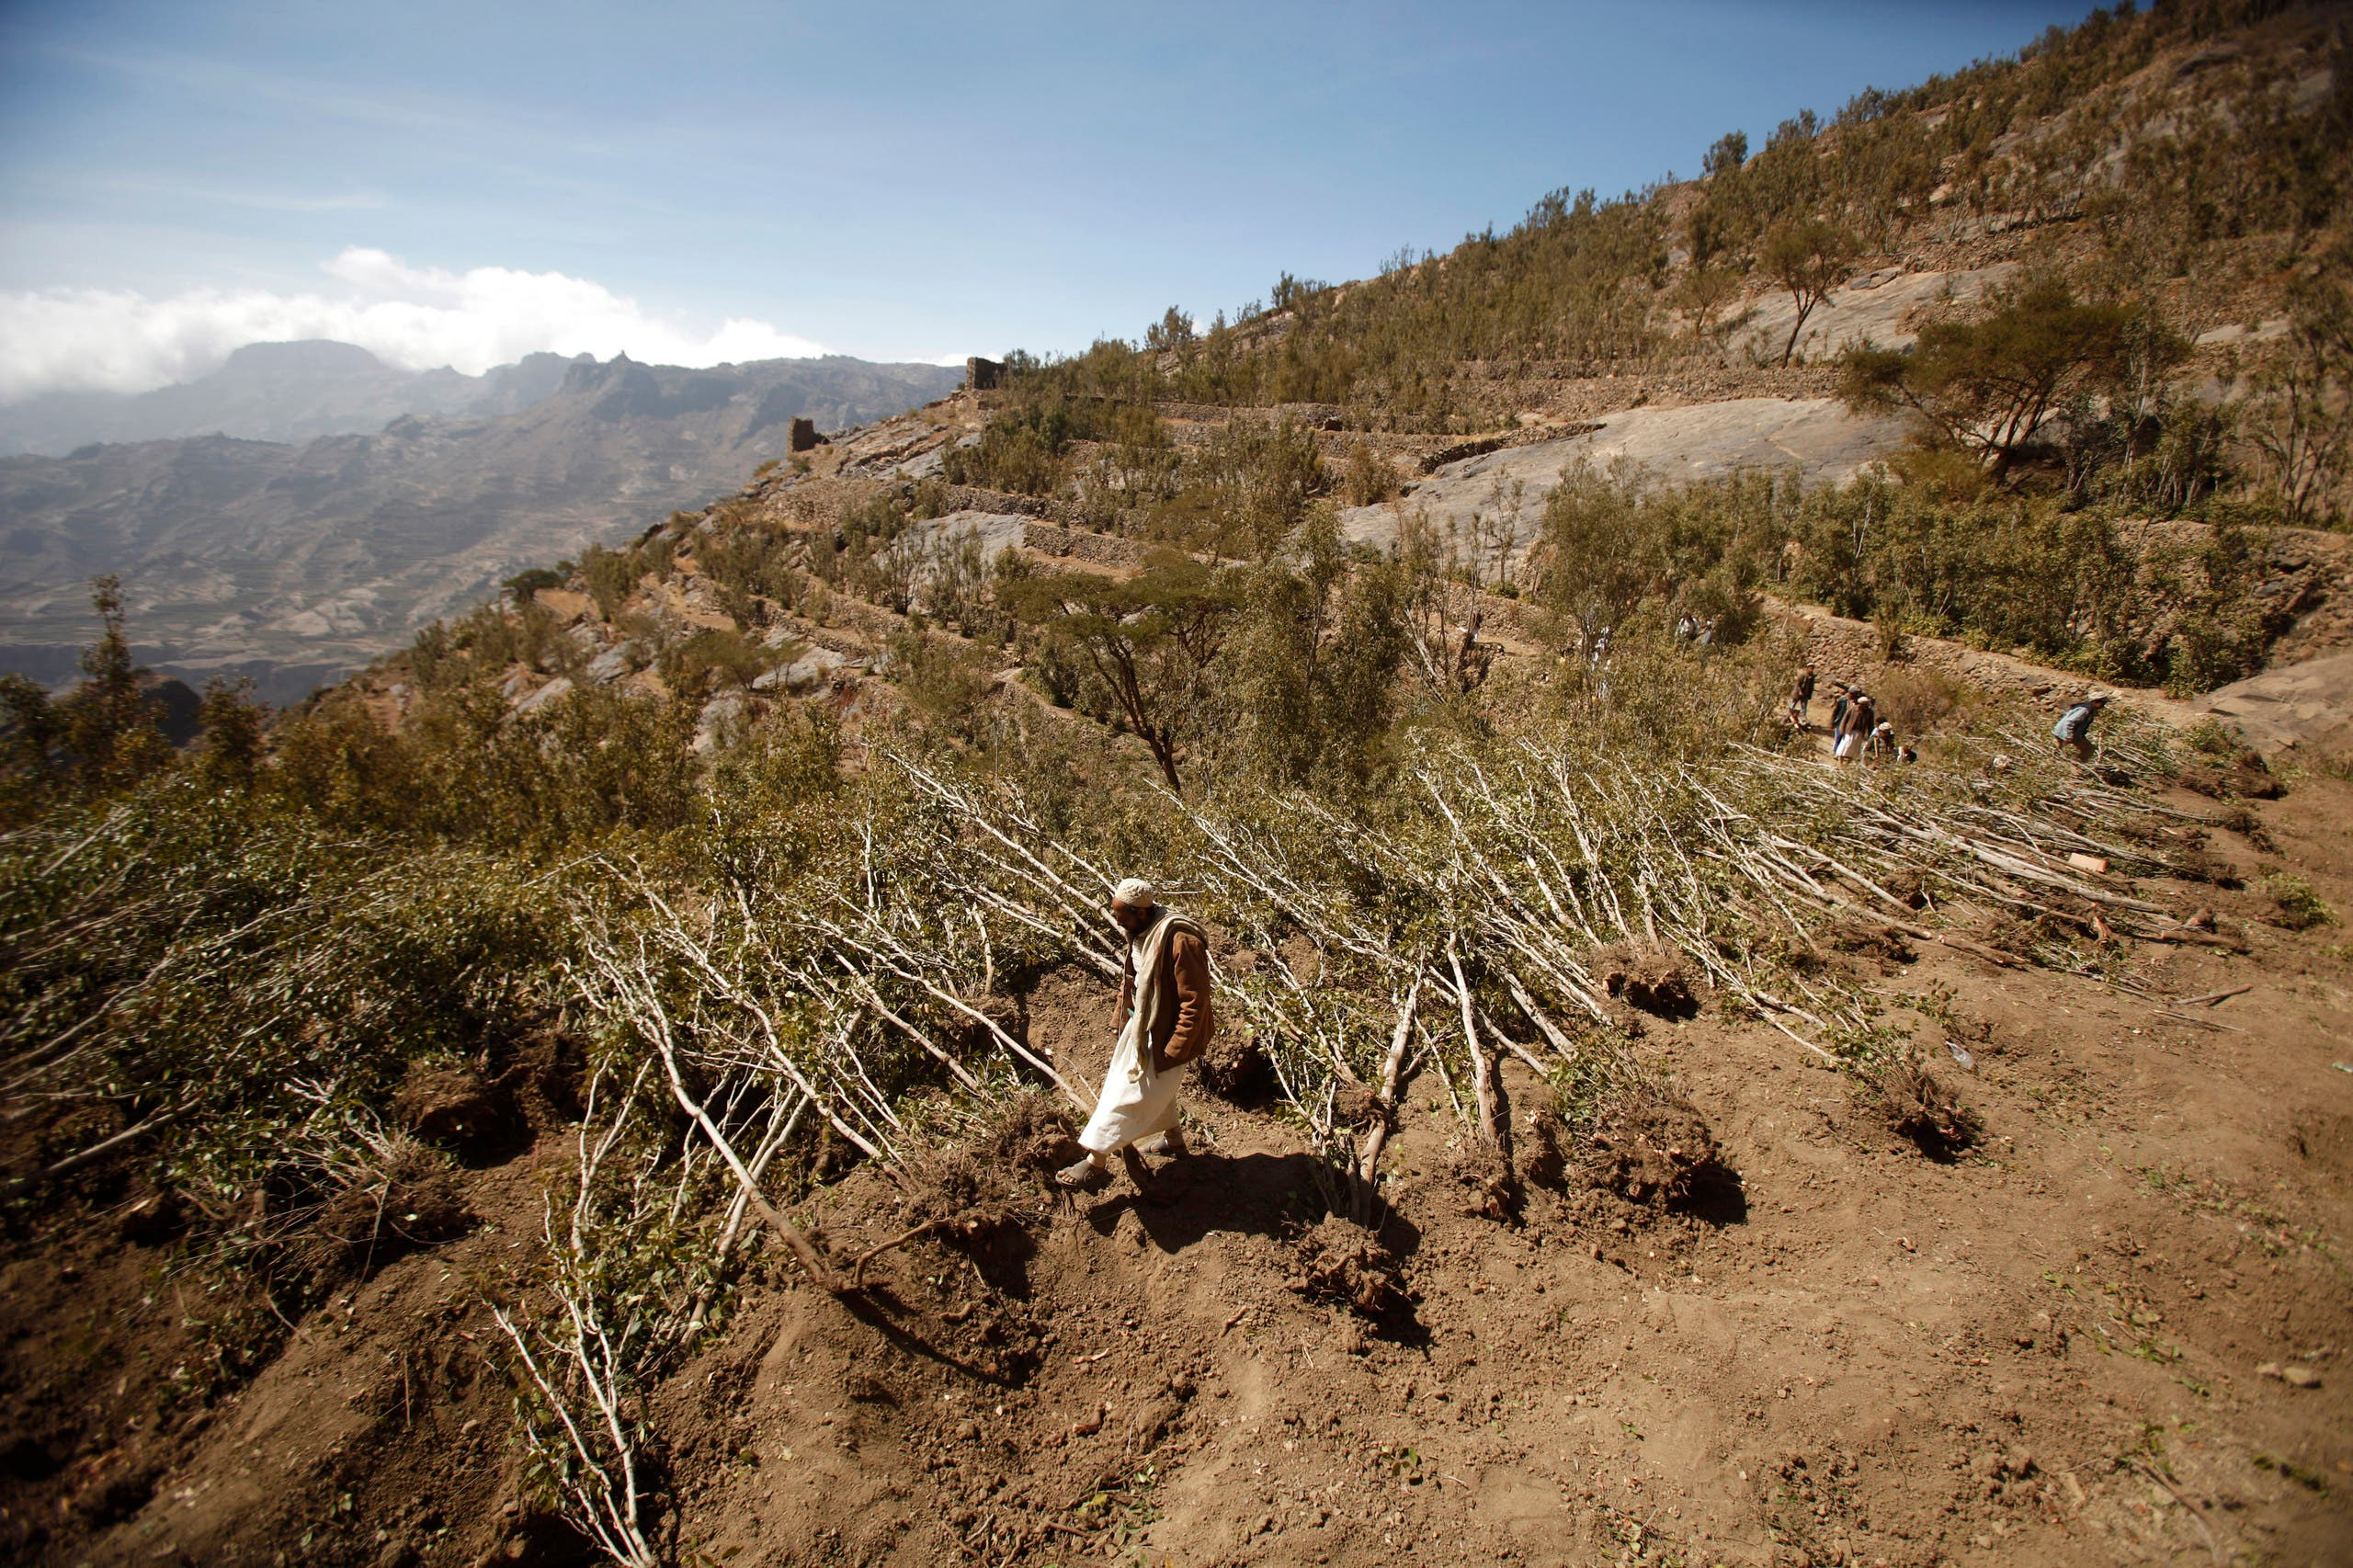 A farmer walks past trees of qat, a mild stimulant, cut down as part of a local campaign aimed at uprooting qat and replacing it with coffee and almond plants in Haraz mountains, around 100km (62 miles) west of the Yemeni capital Sanaa January 3, 2013.reuters